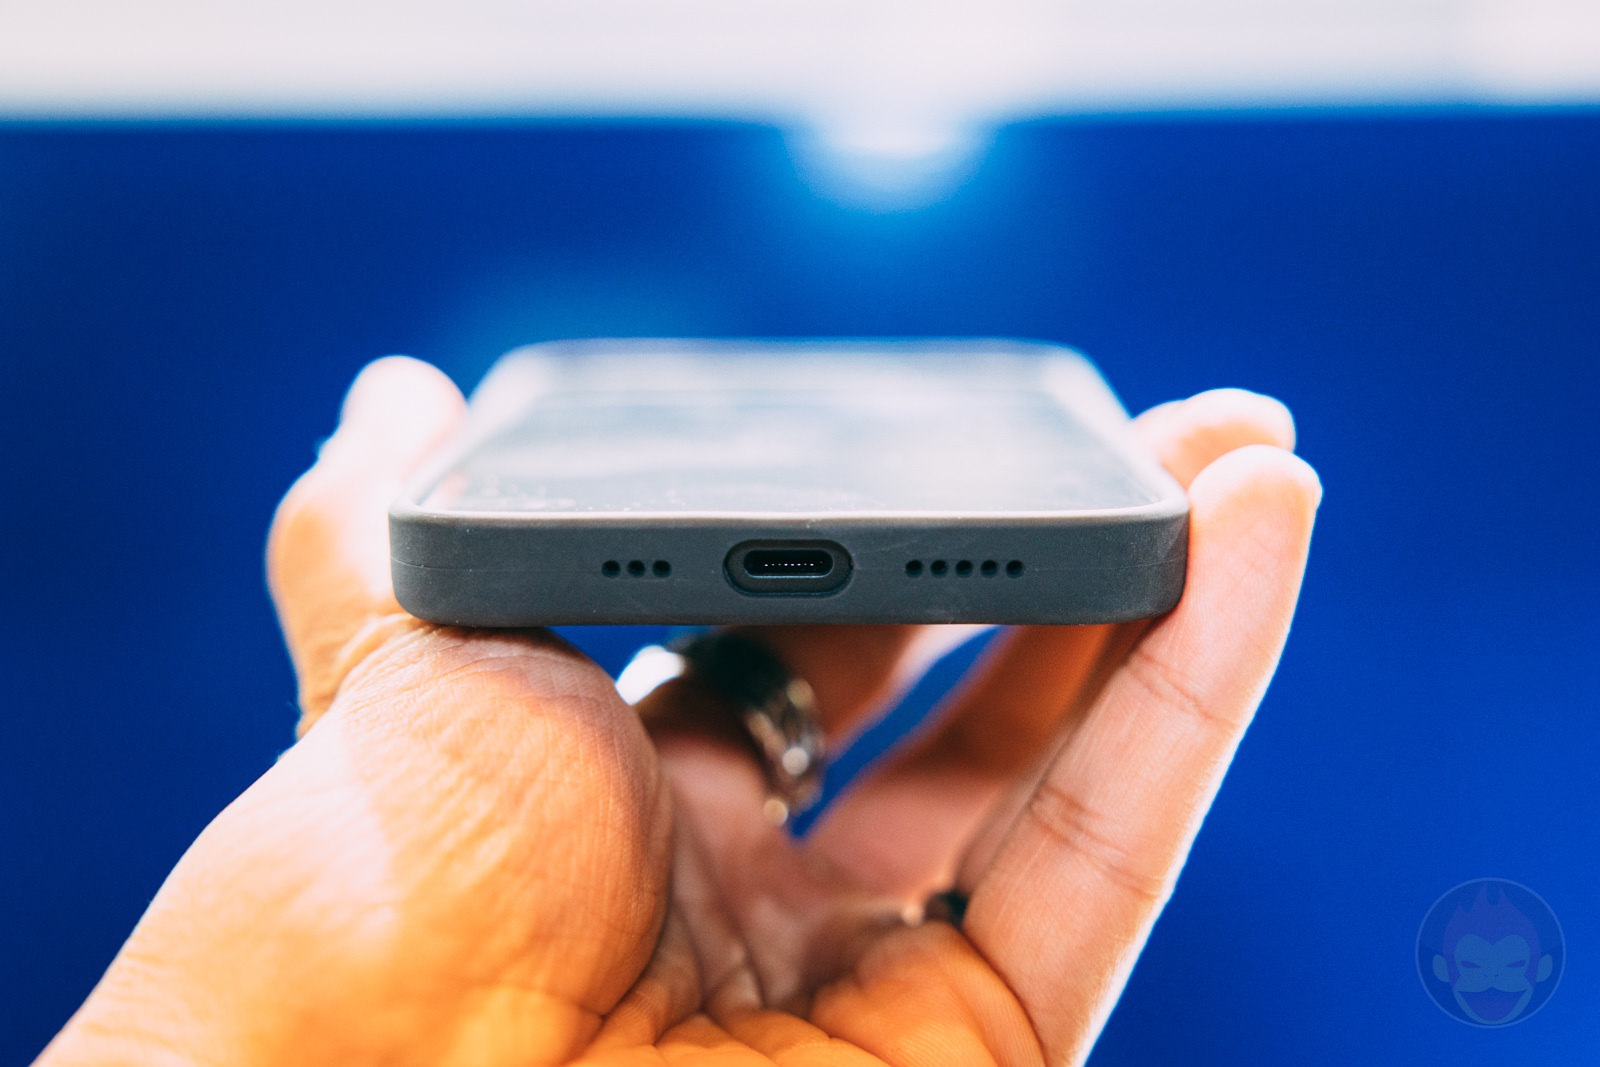 Anker Magnetic Silicone Case for iPhone12 12Pro Handson 11